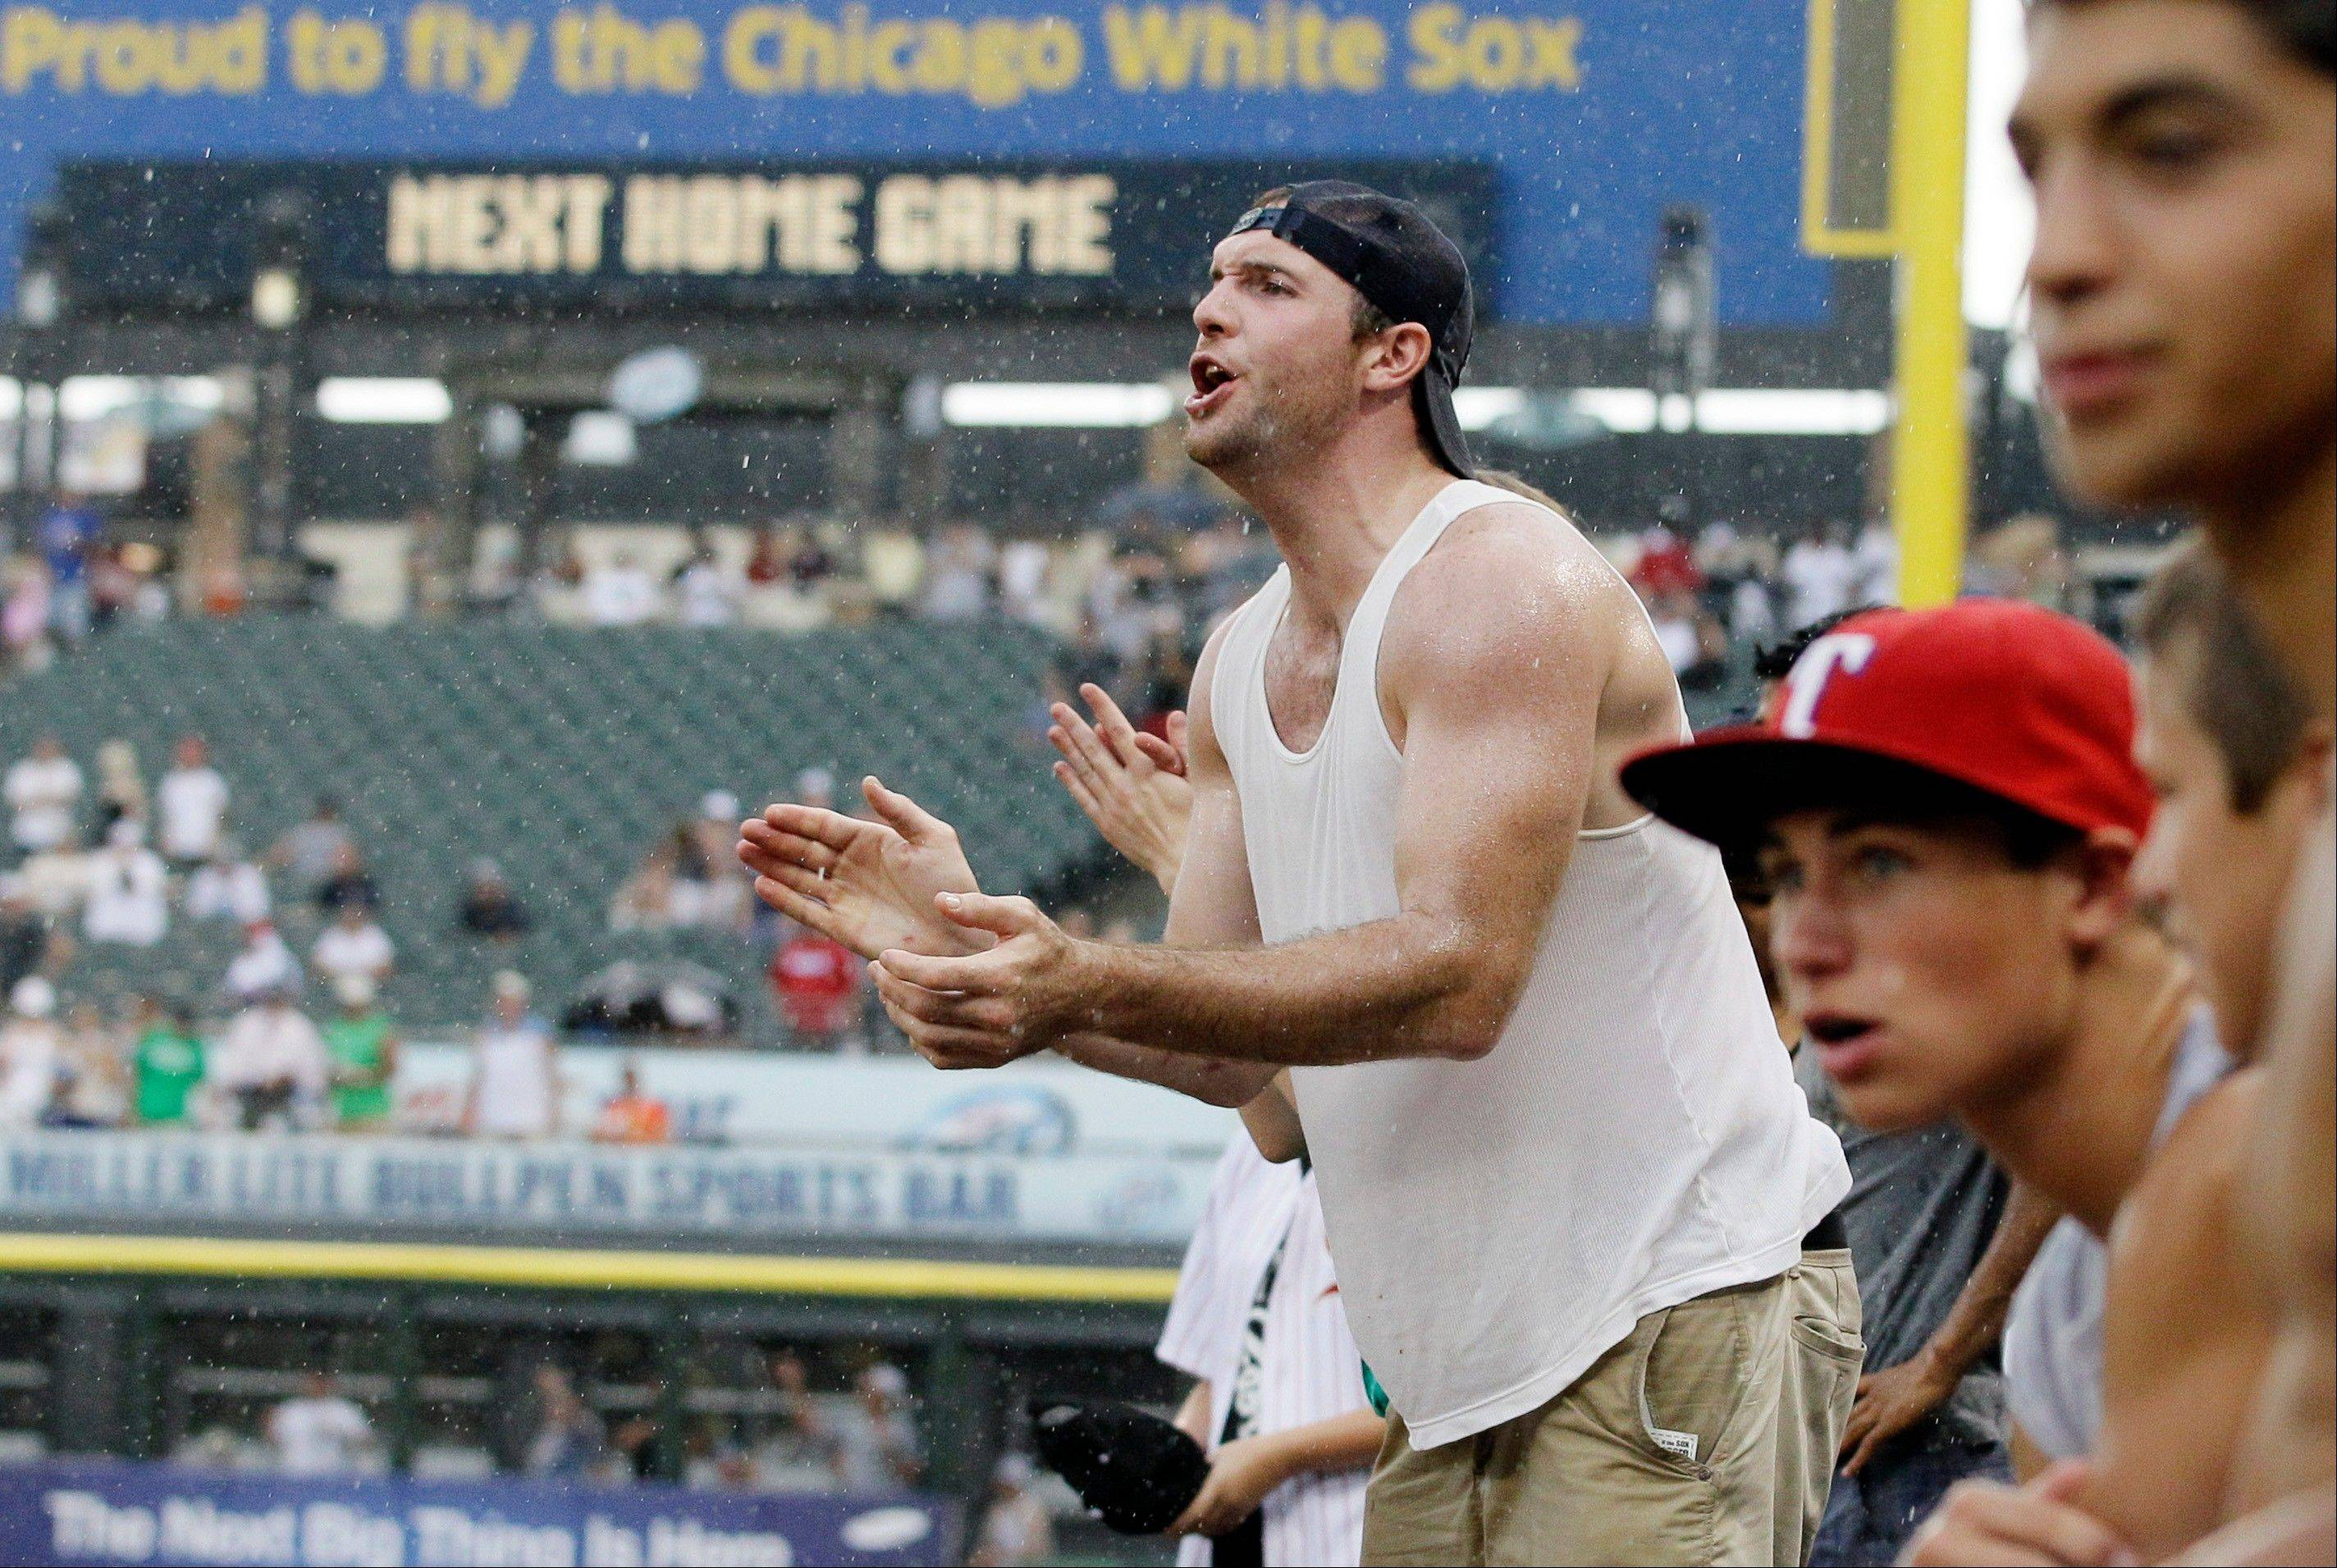 The White Sox failed to draw 2 million fans last season, and now team officials have decided to reduce season ticket prices and parking fees to attract more fans.